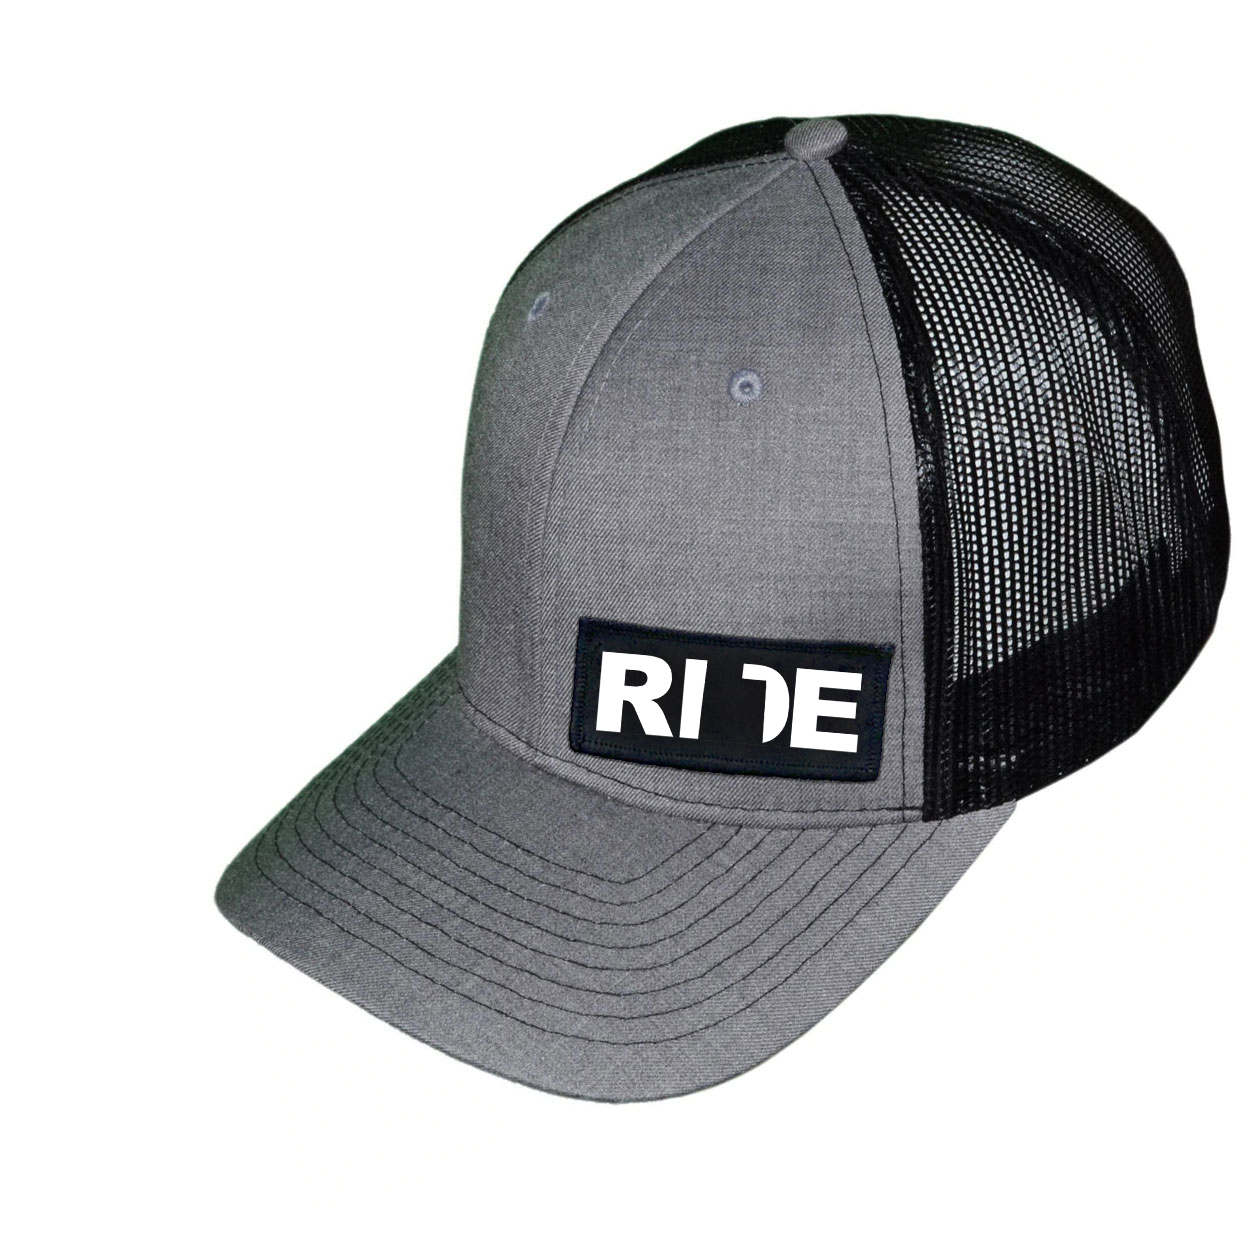 Ride Utah Night Out Woven Patch Snapback Trucker Hat Heather Gray/Black (White Logo)